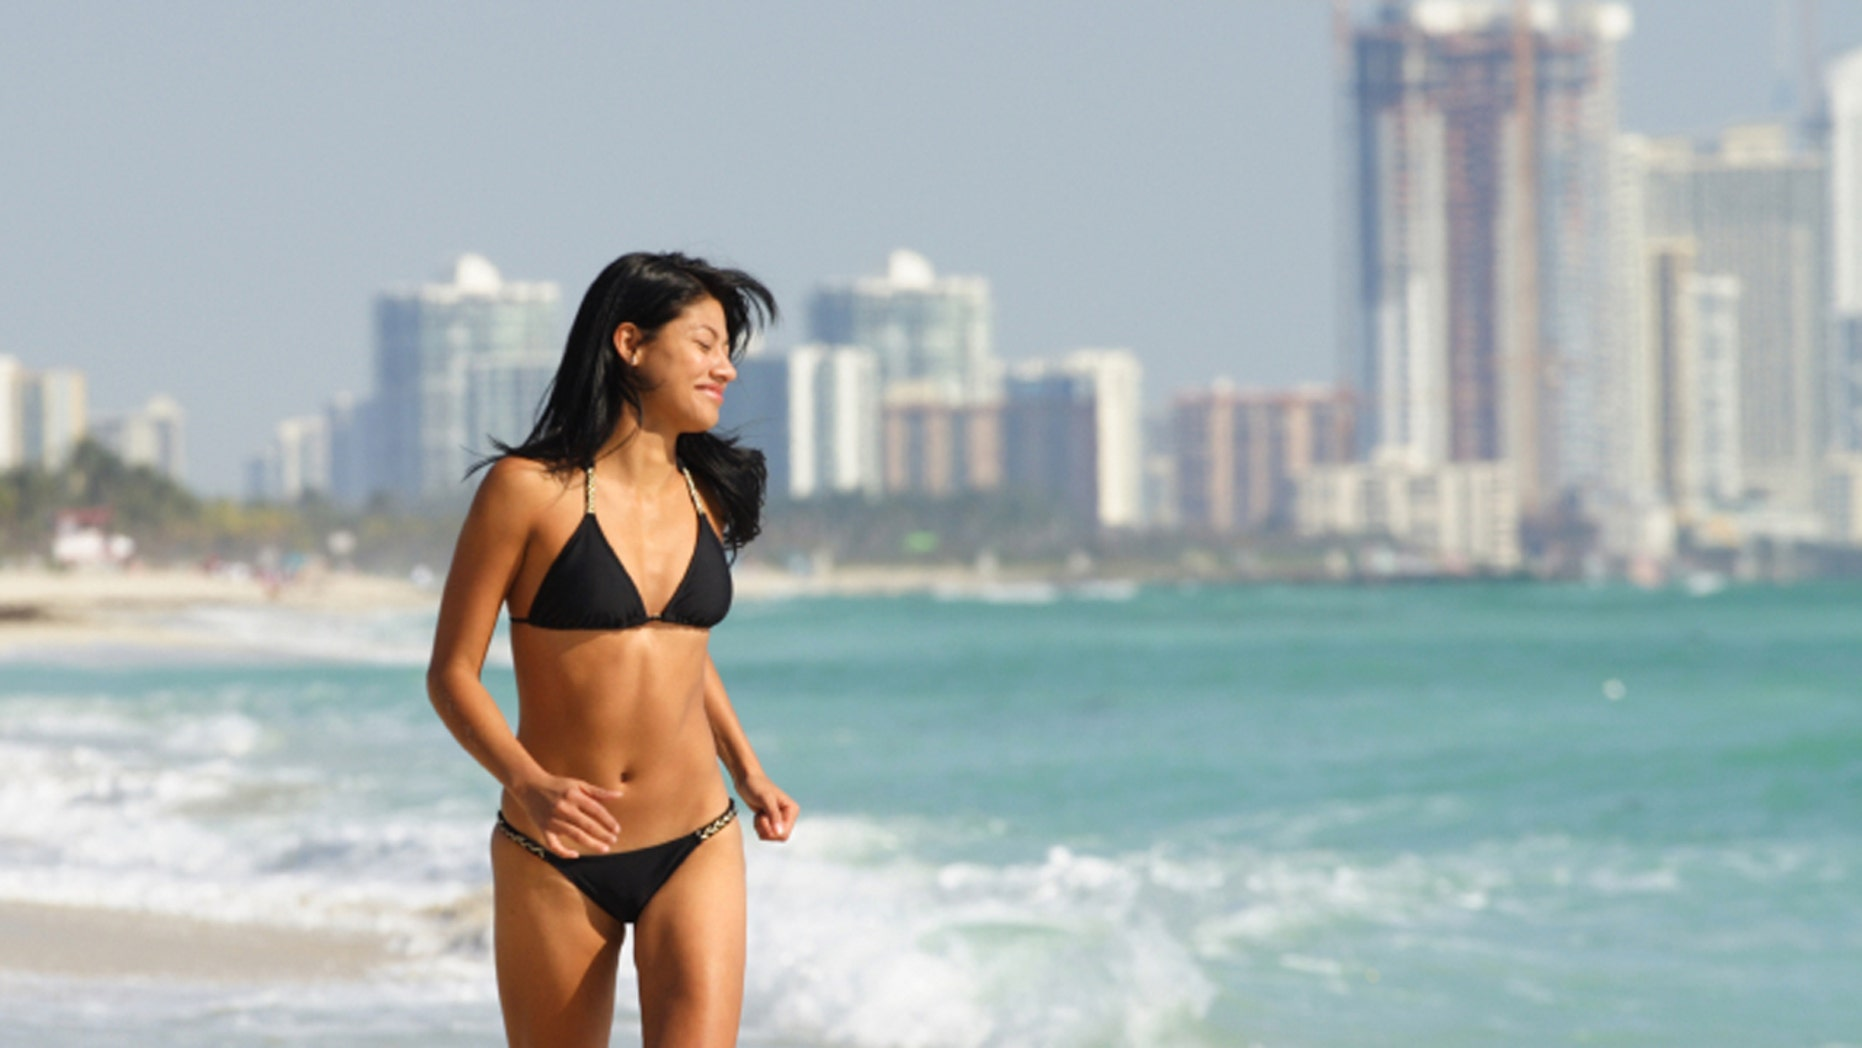 There's plenty of reasons why South Beach is one of the most popular beach spots in the U.S.